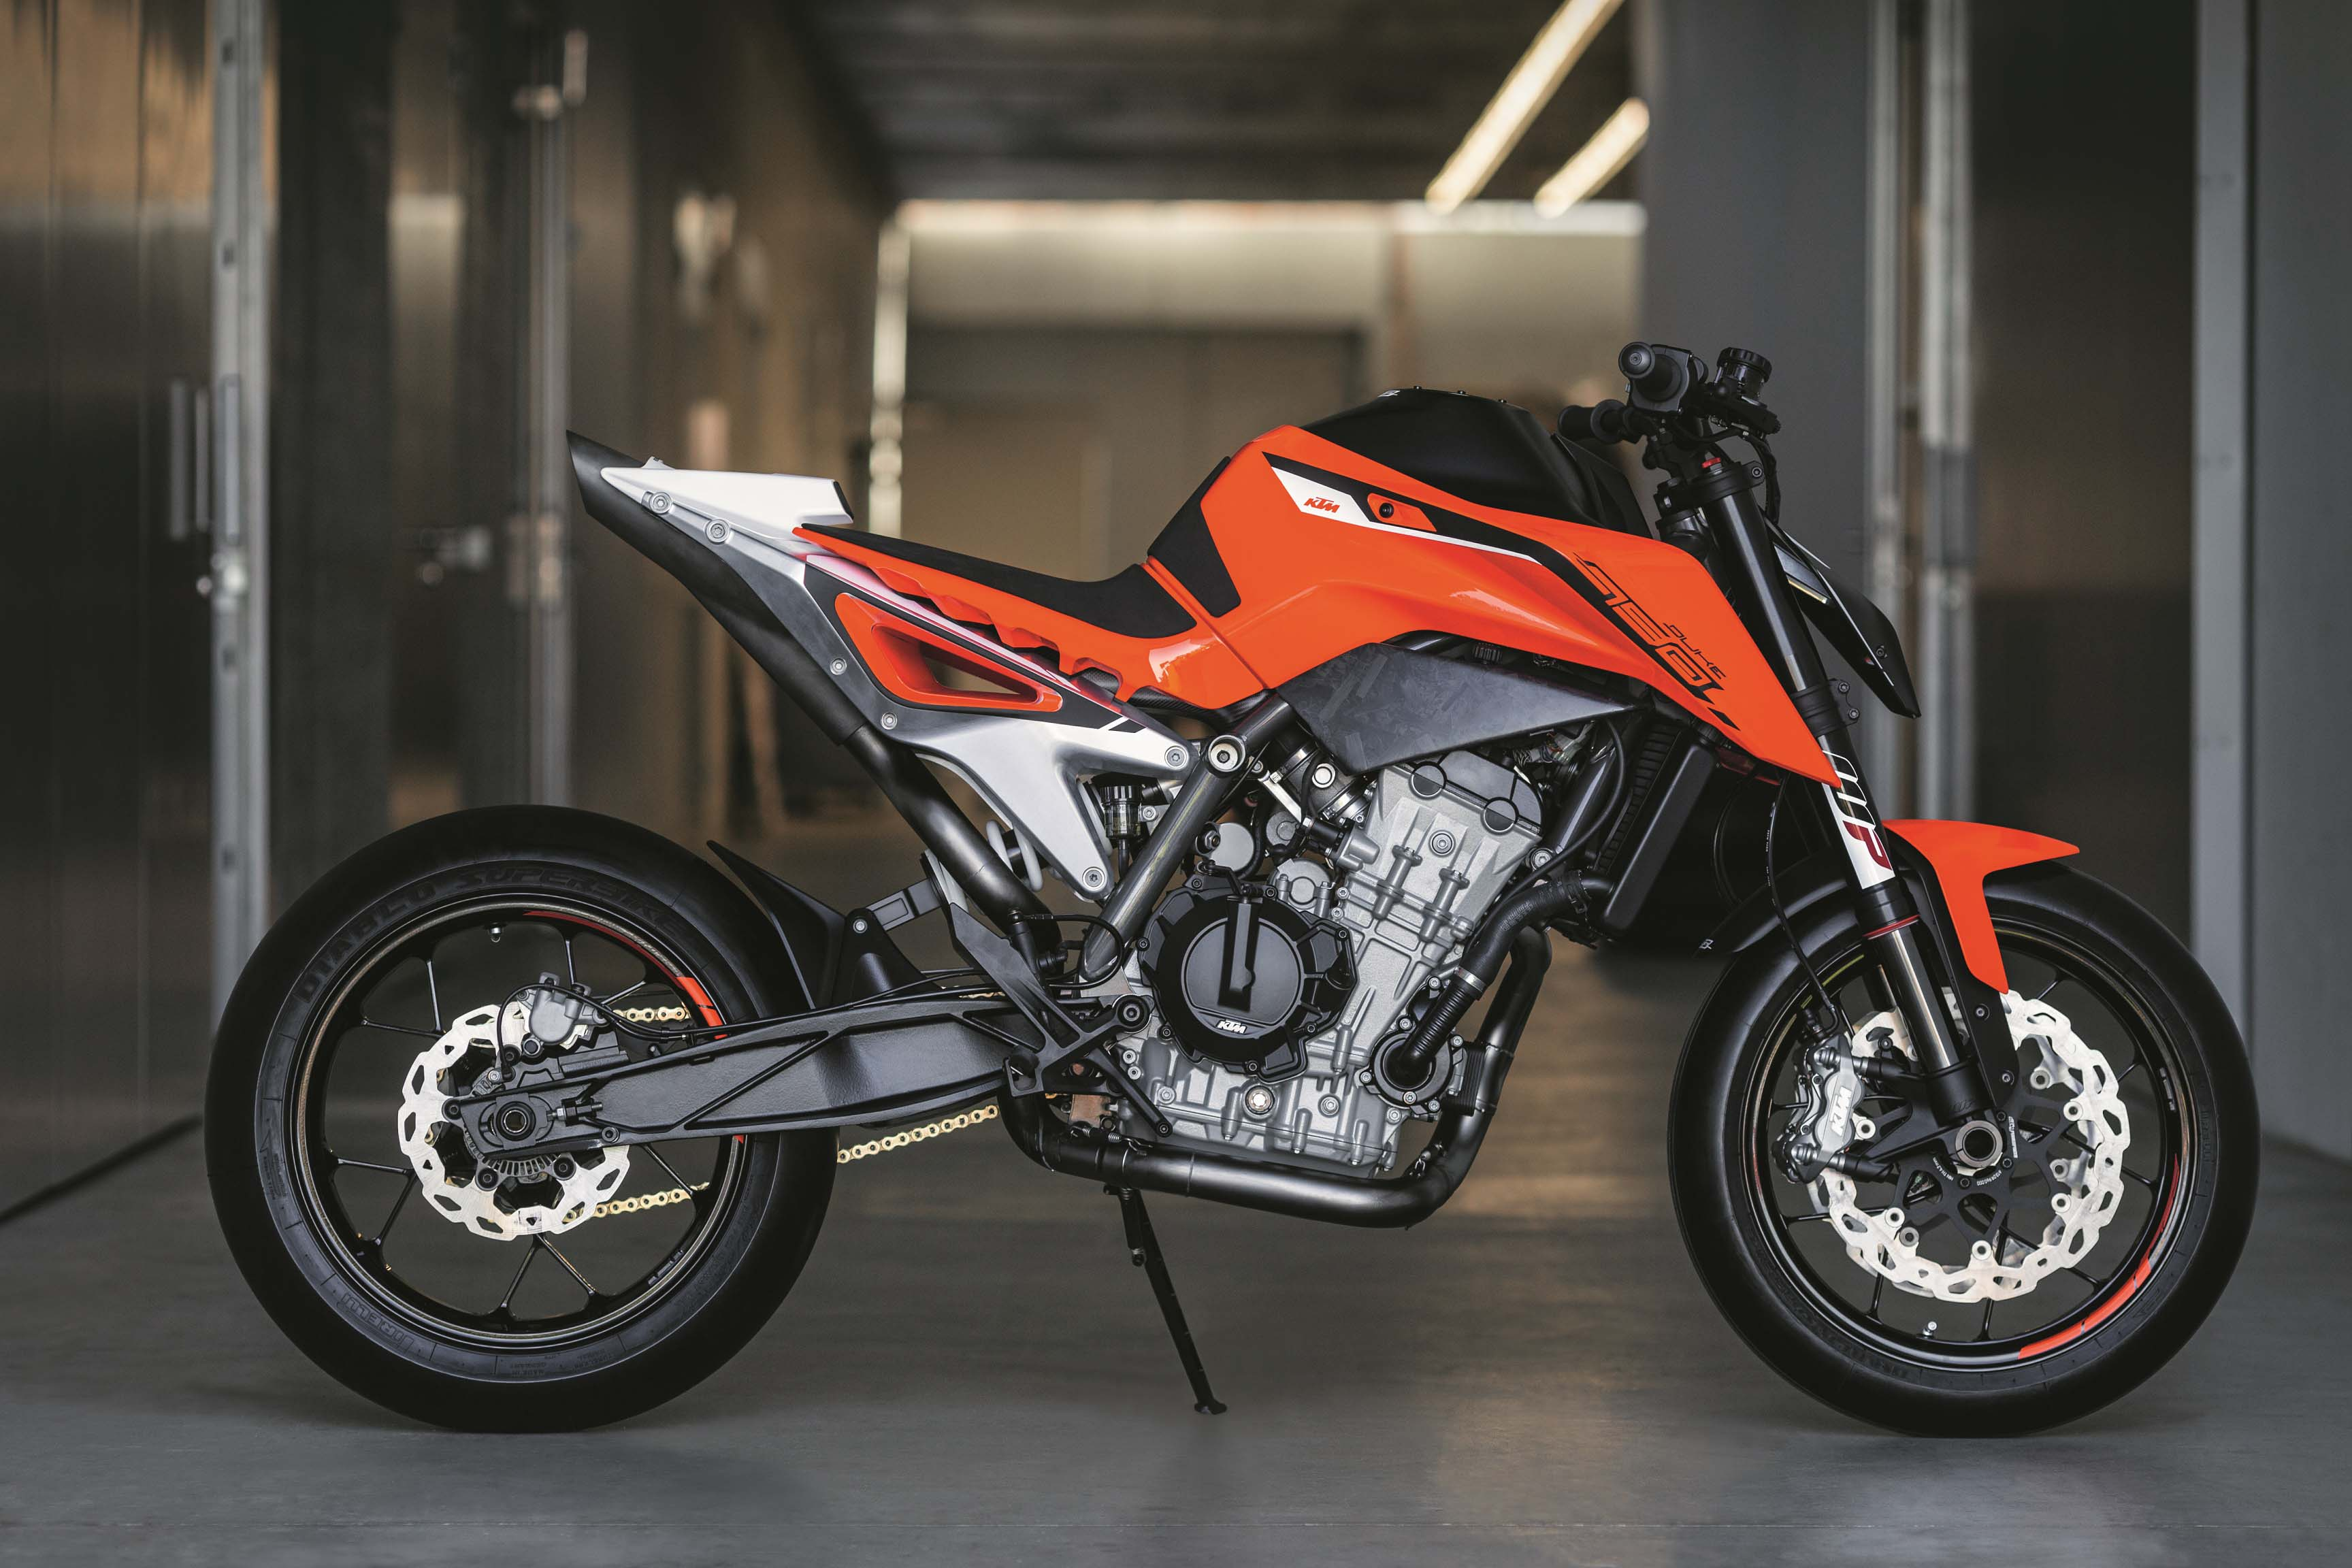 2018 ktm duke 690. perfect duke ktm790dukeprototypeeicma01 for 2018 ktm duke 690